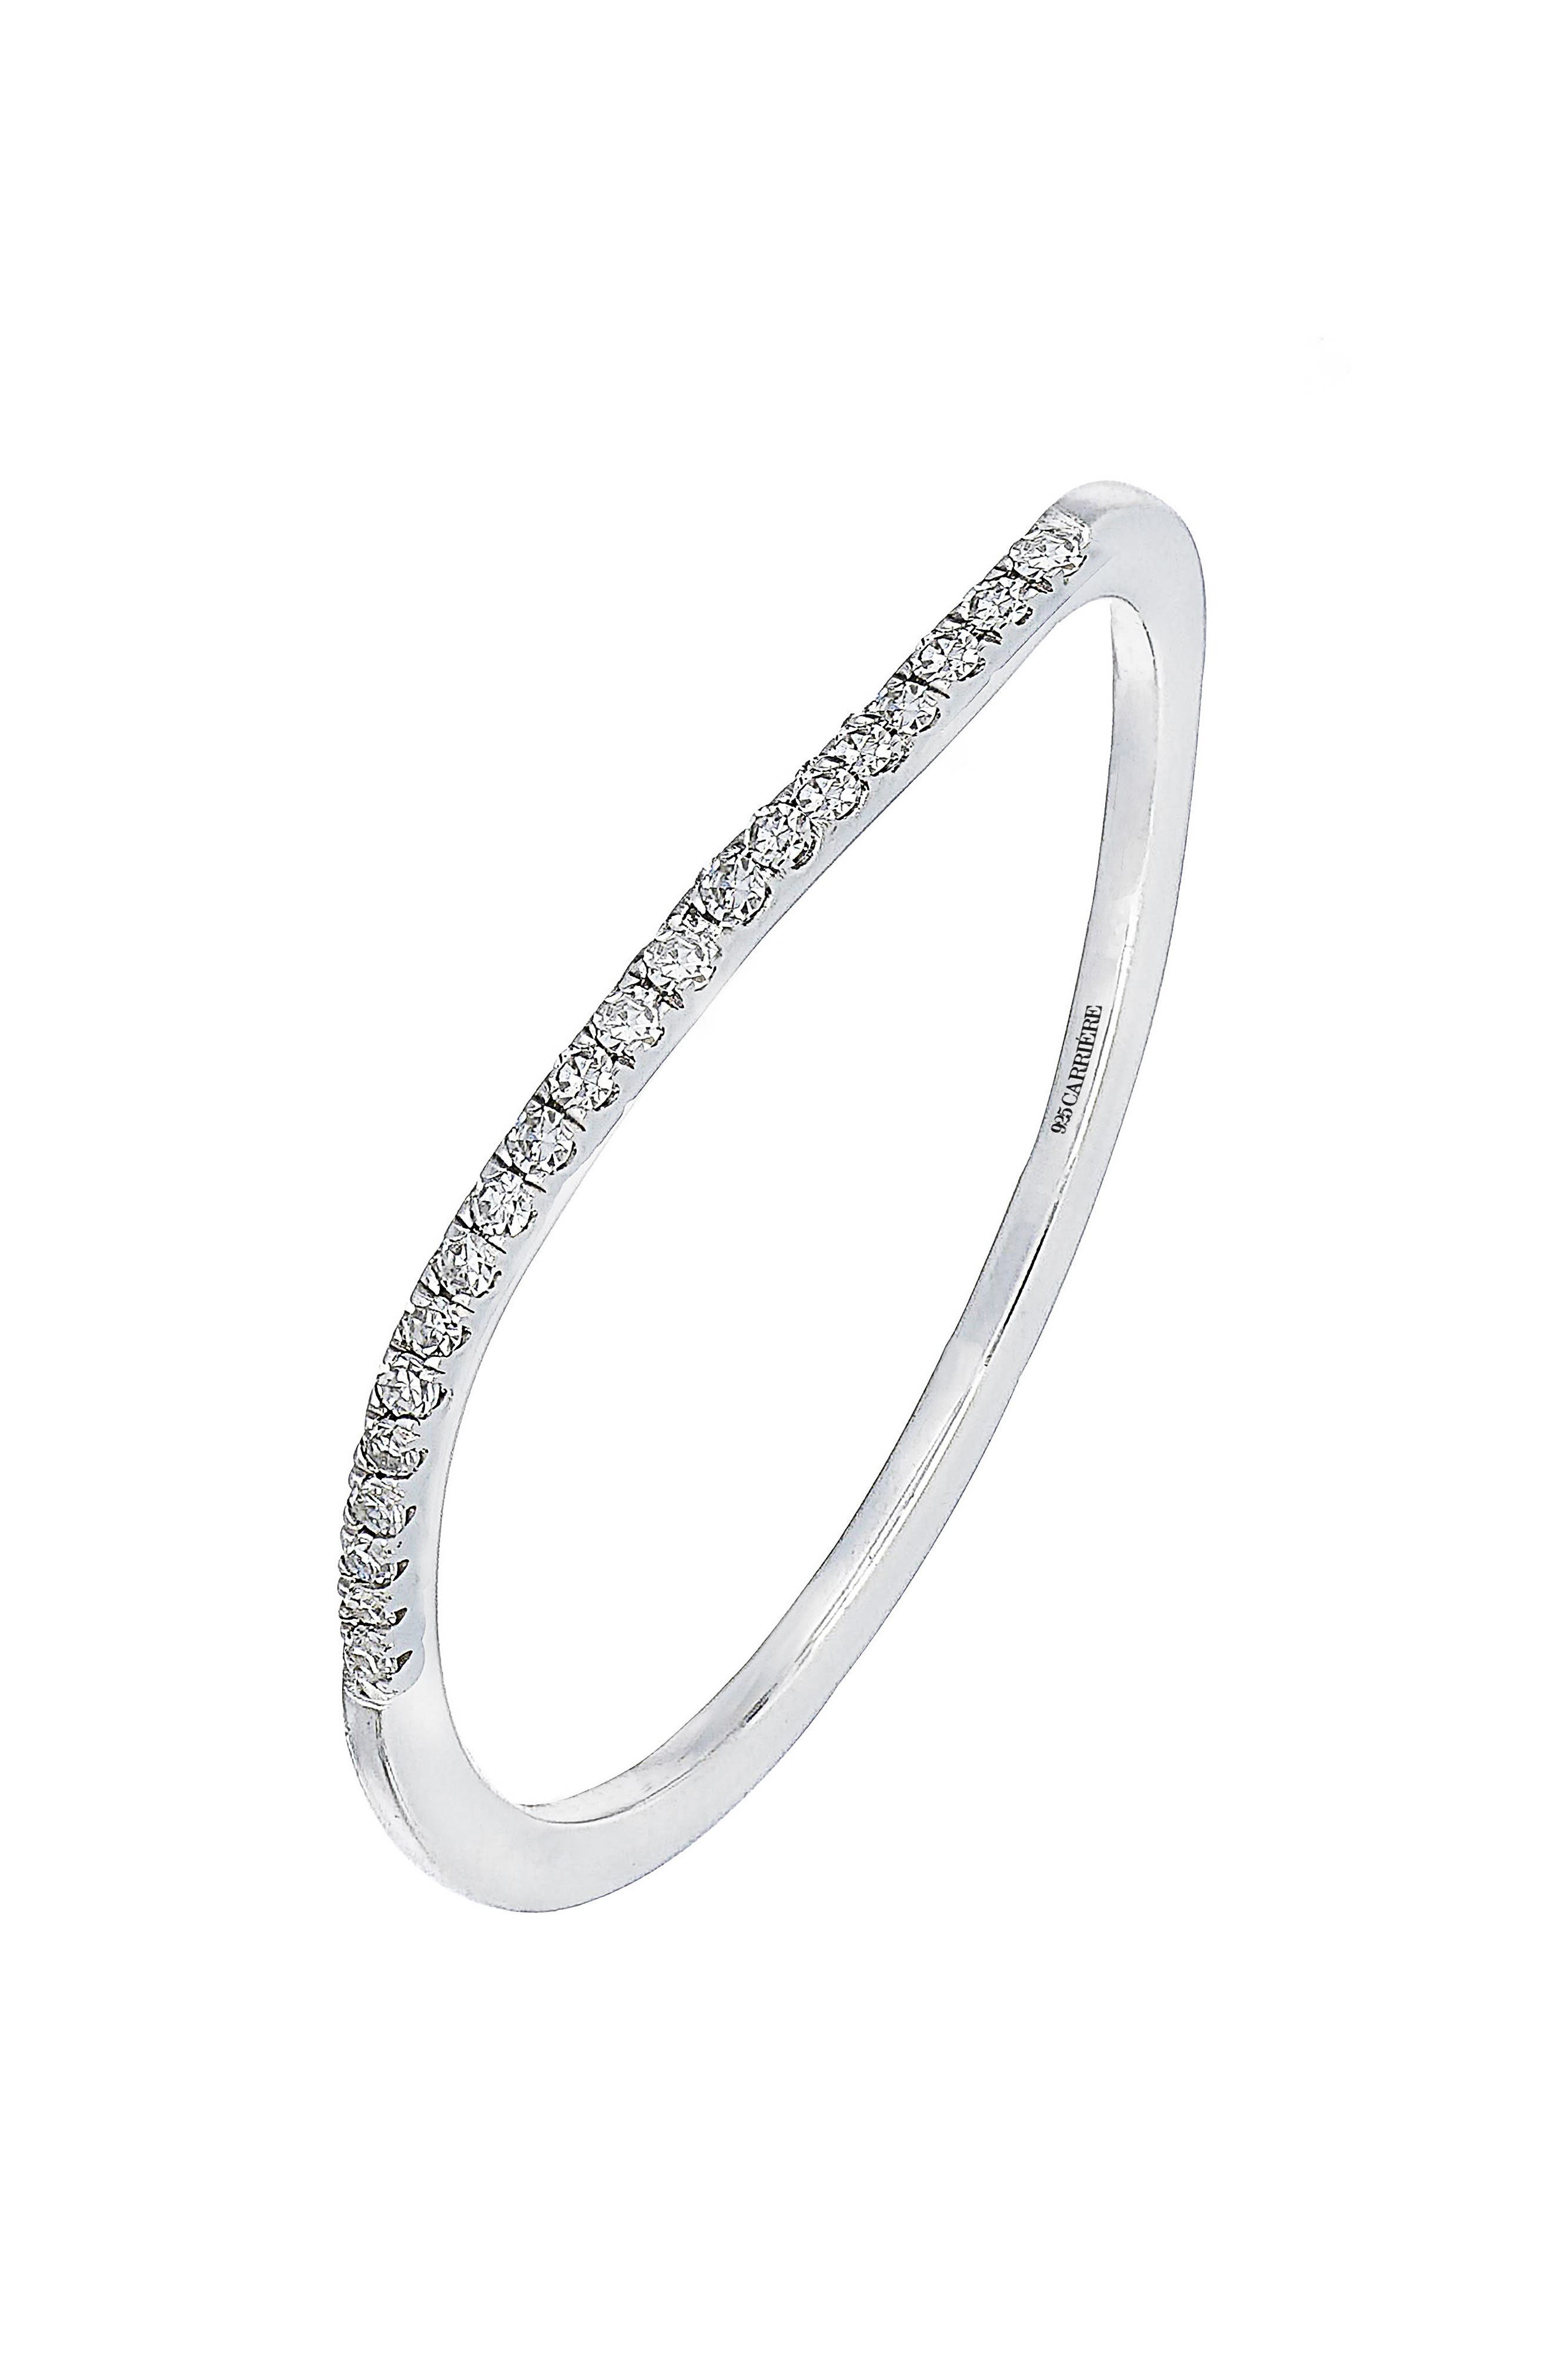 Main Image - Carrière Diamond Stacking Ring